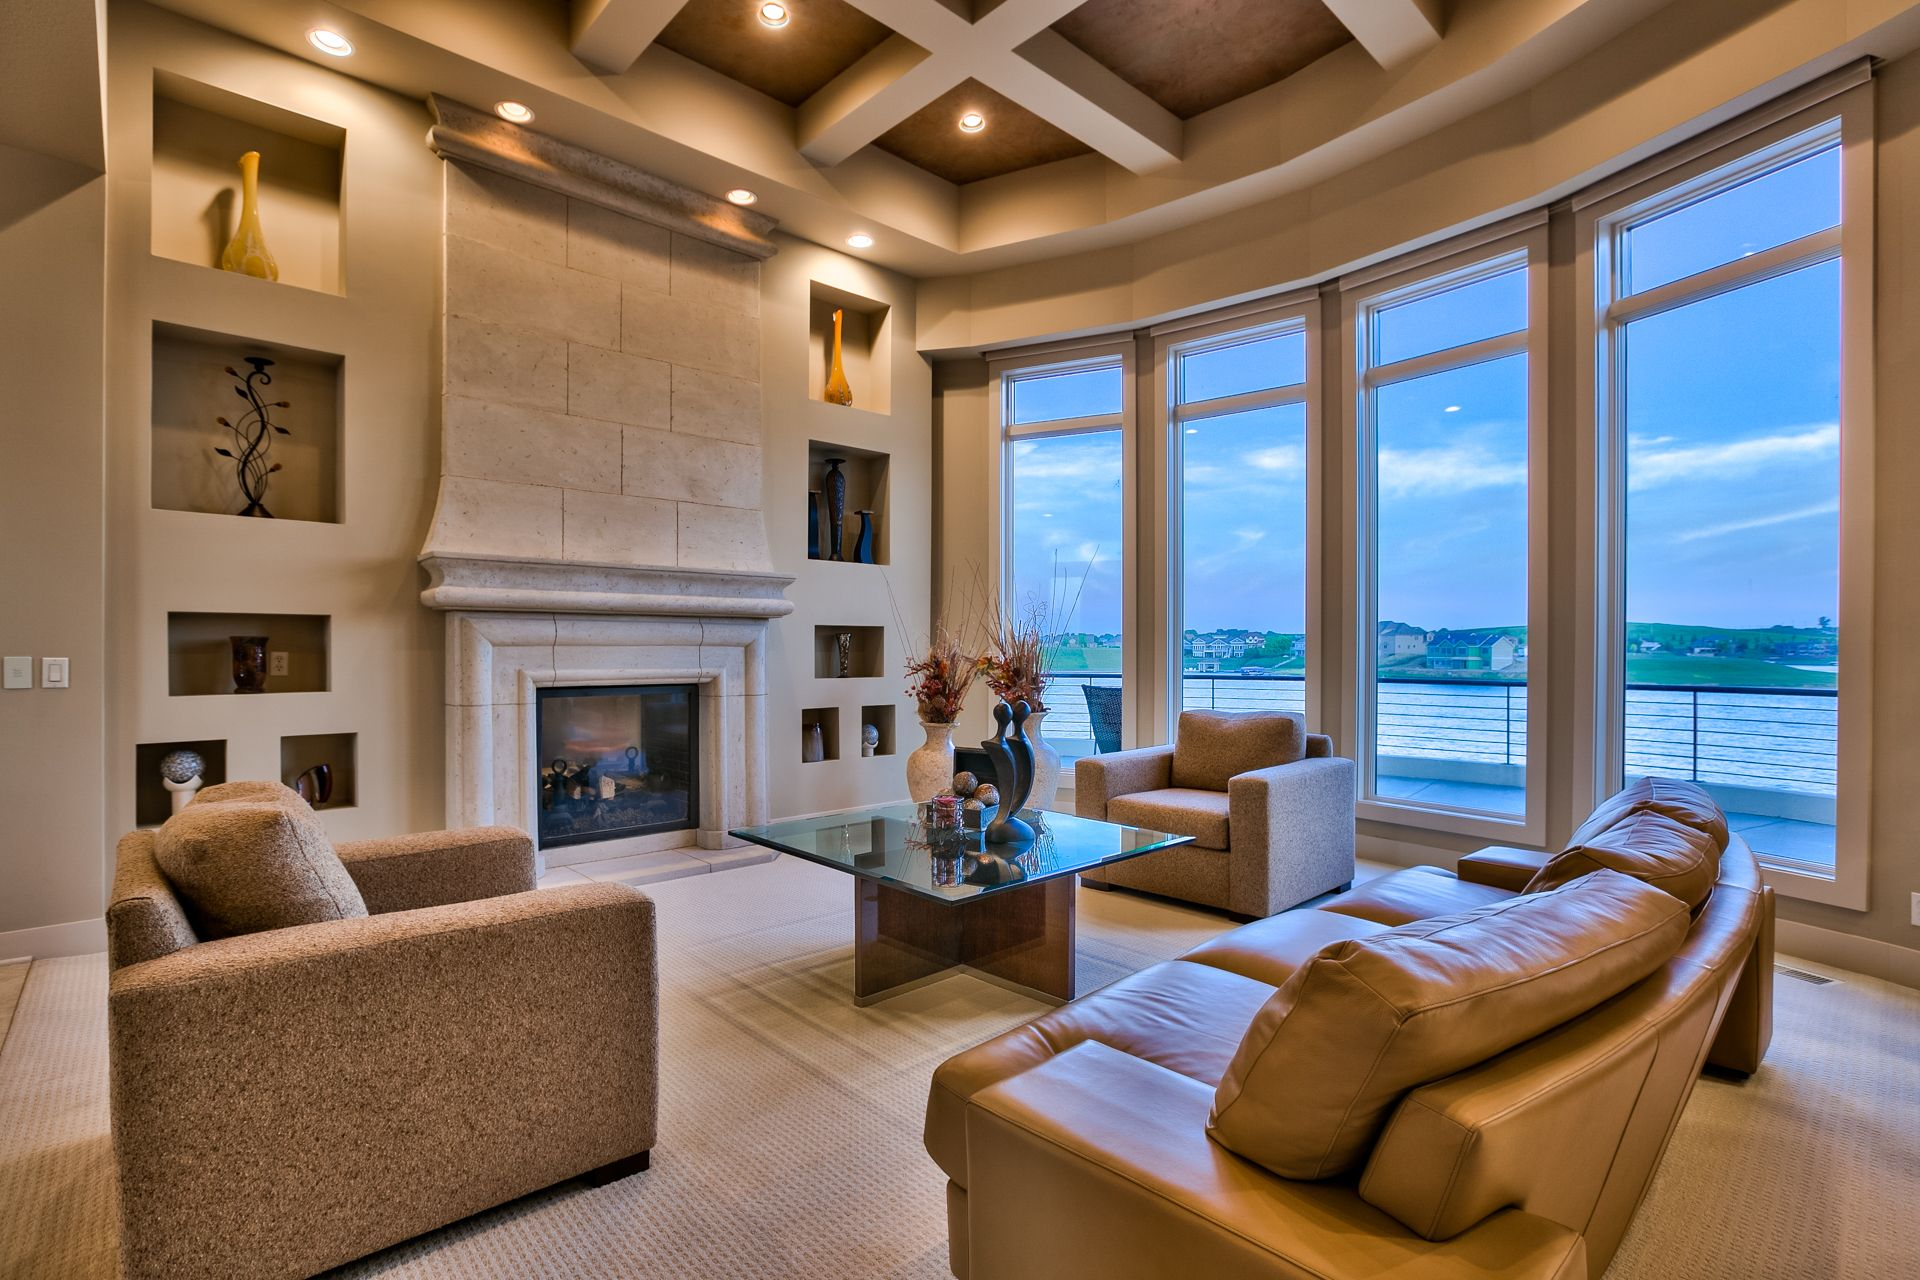 Beautiful 1 4 Million Dollar Home Located On Gorgeous Lake Bennington Find Us On Zillow At Www Zillow Com P Luxury Homes Million Dollar Rooms Crazy Houses Million dollar homes living rooms